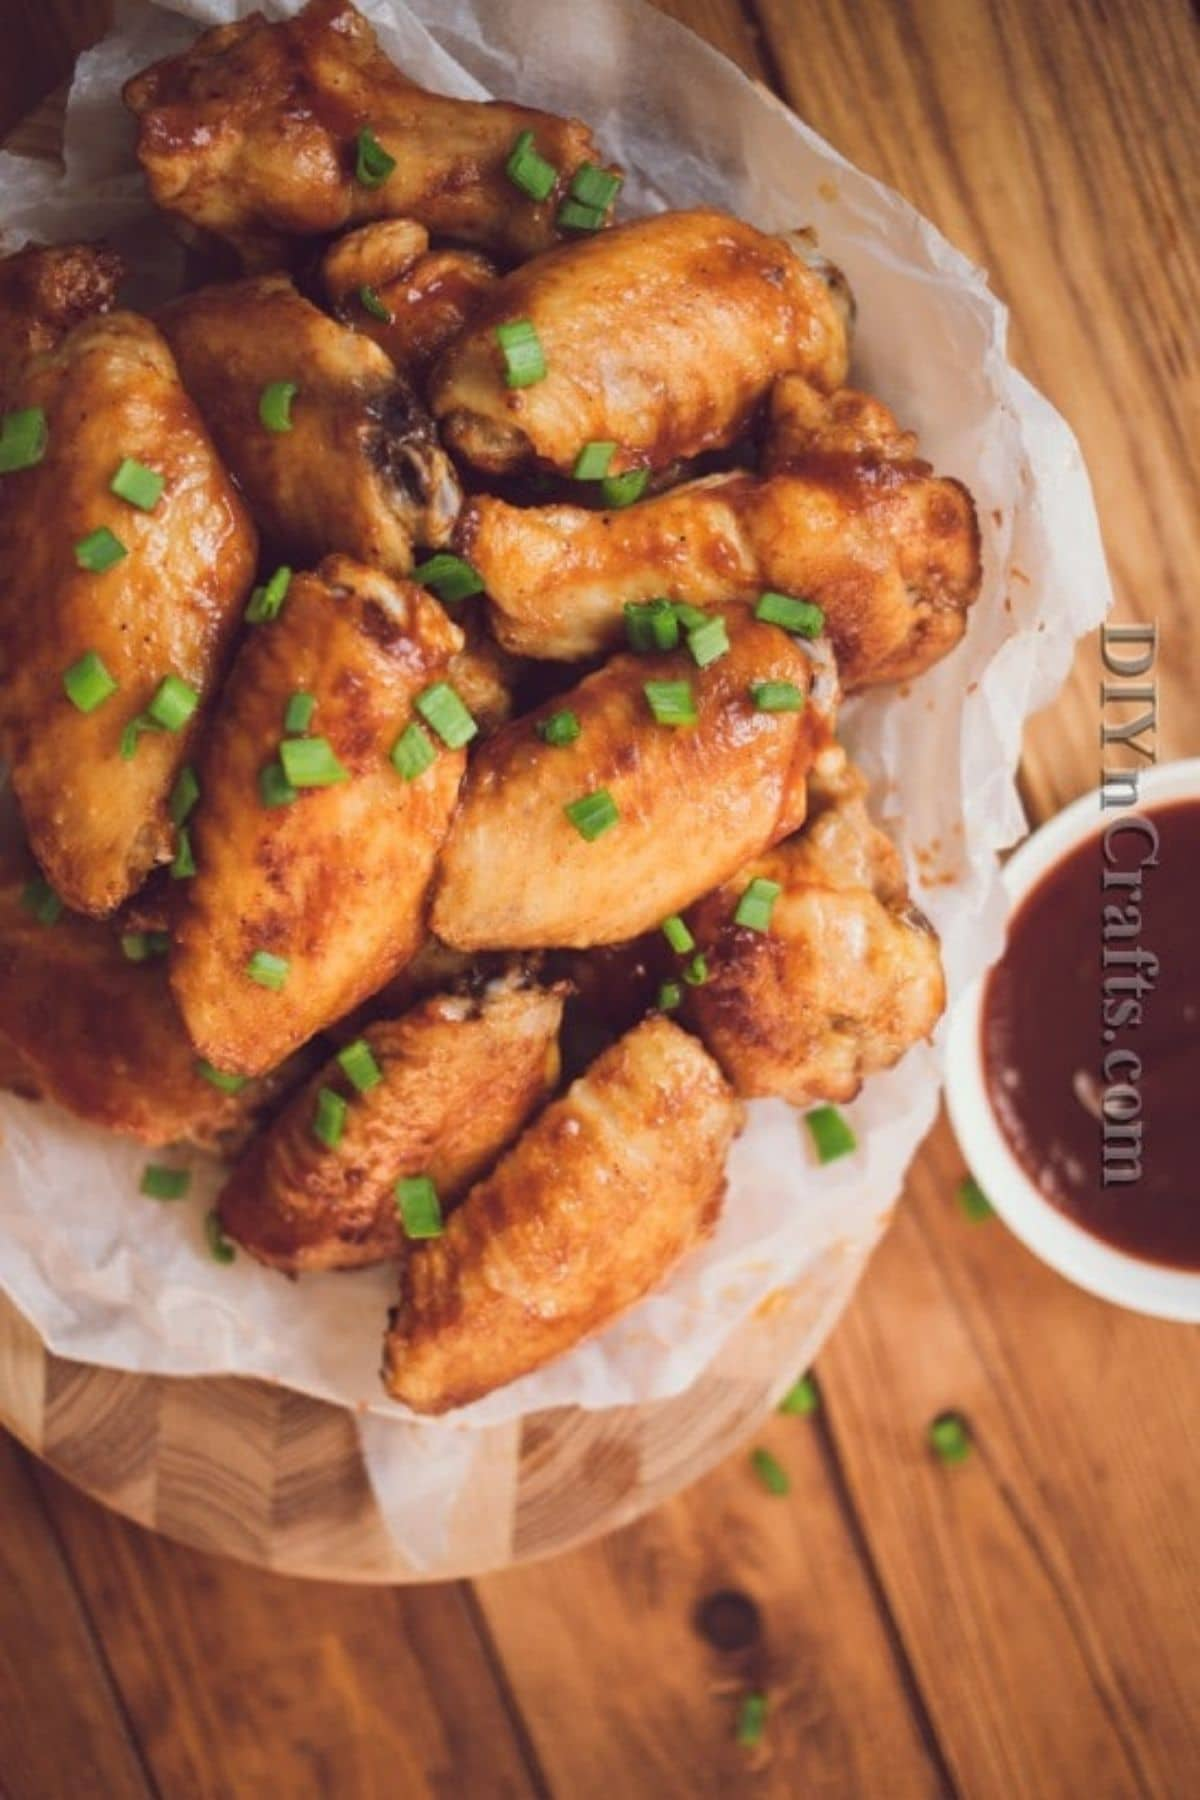 Chicken wings on plate